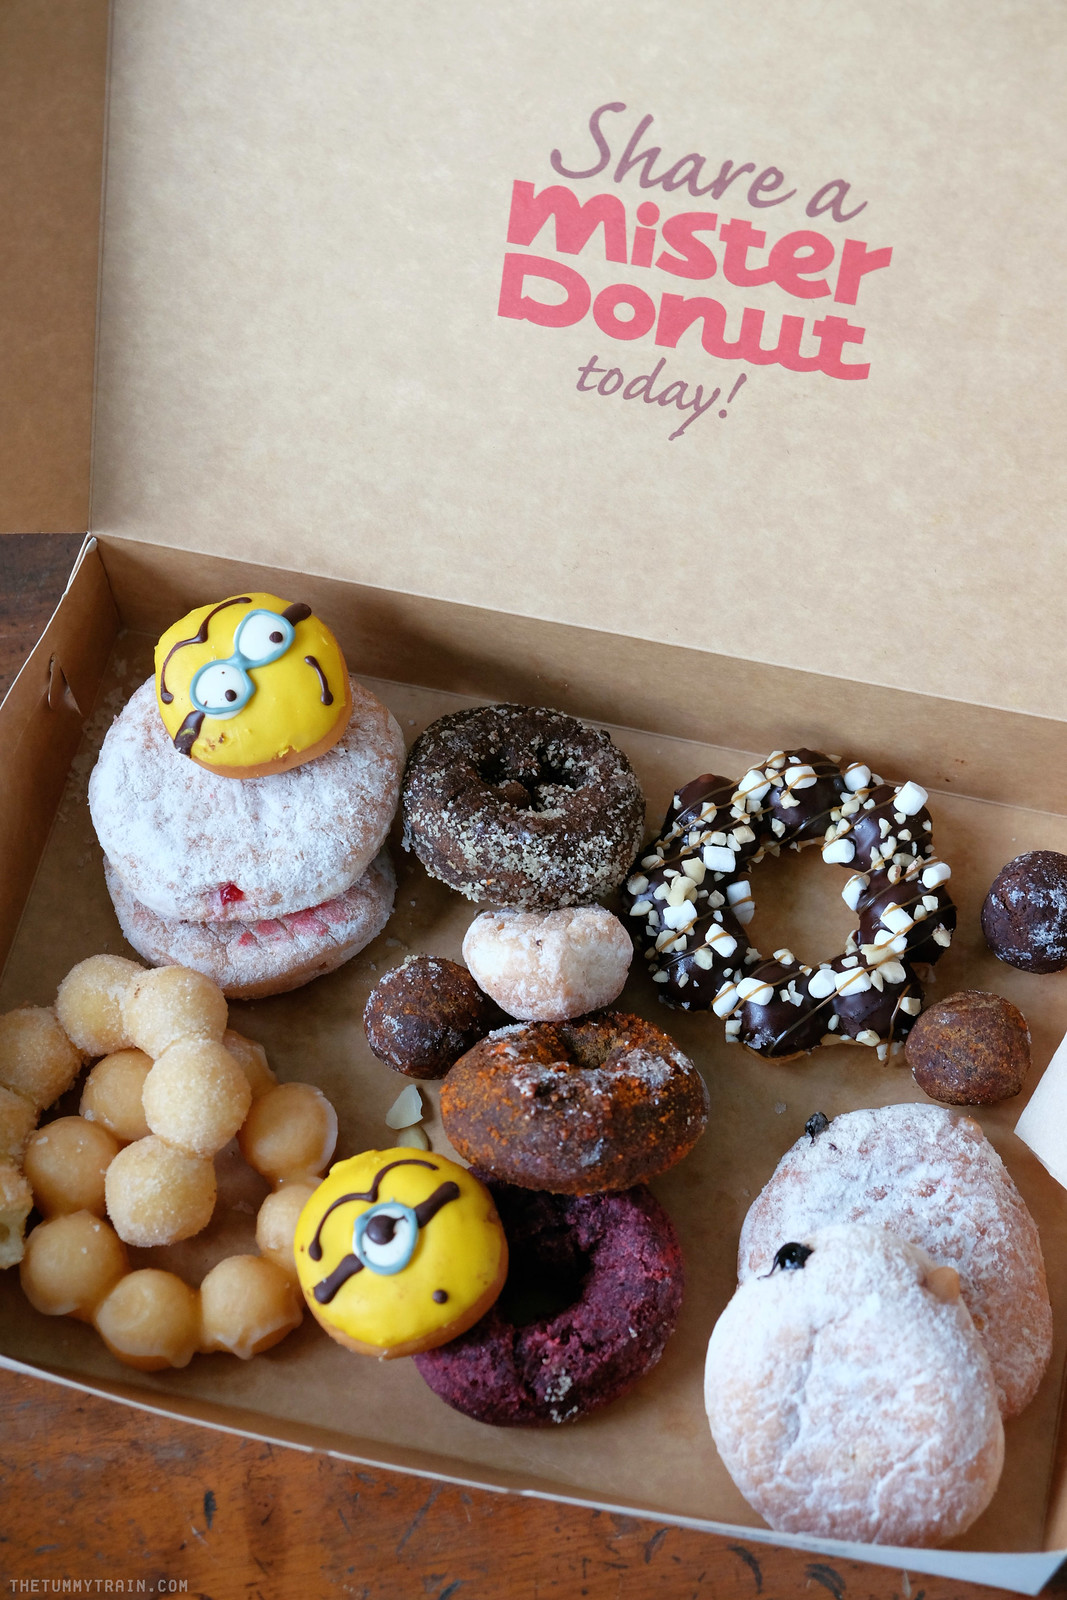 28056786493 87aecf7bda h - Minions invade Mister Donut + An Overload of Donuts Giveaway!